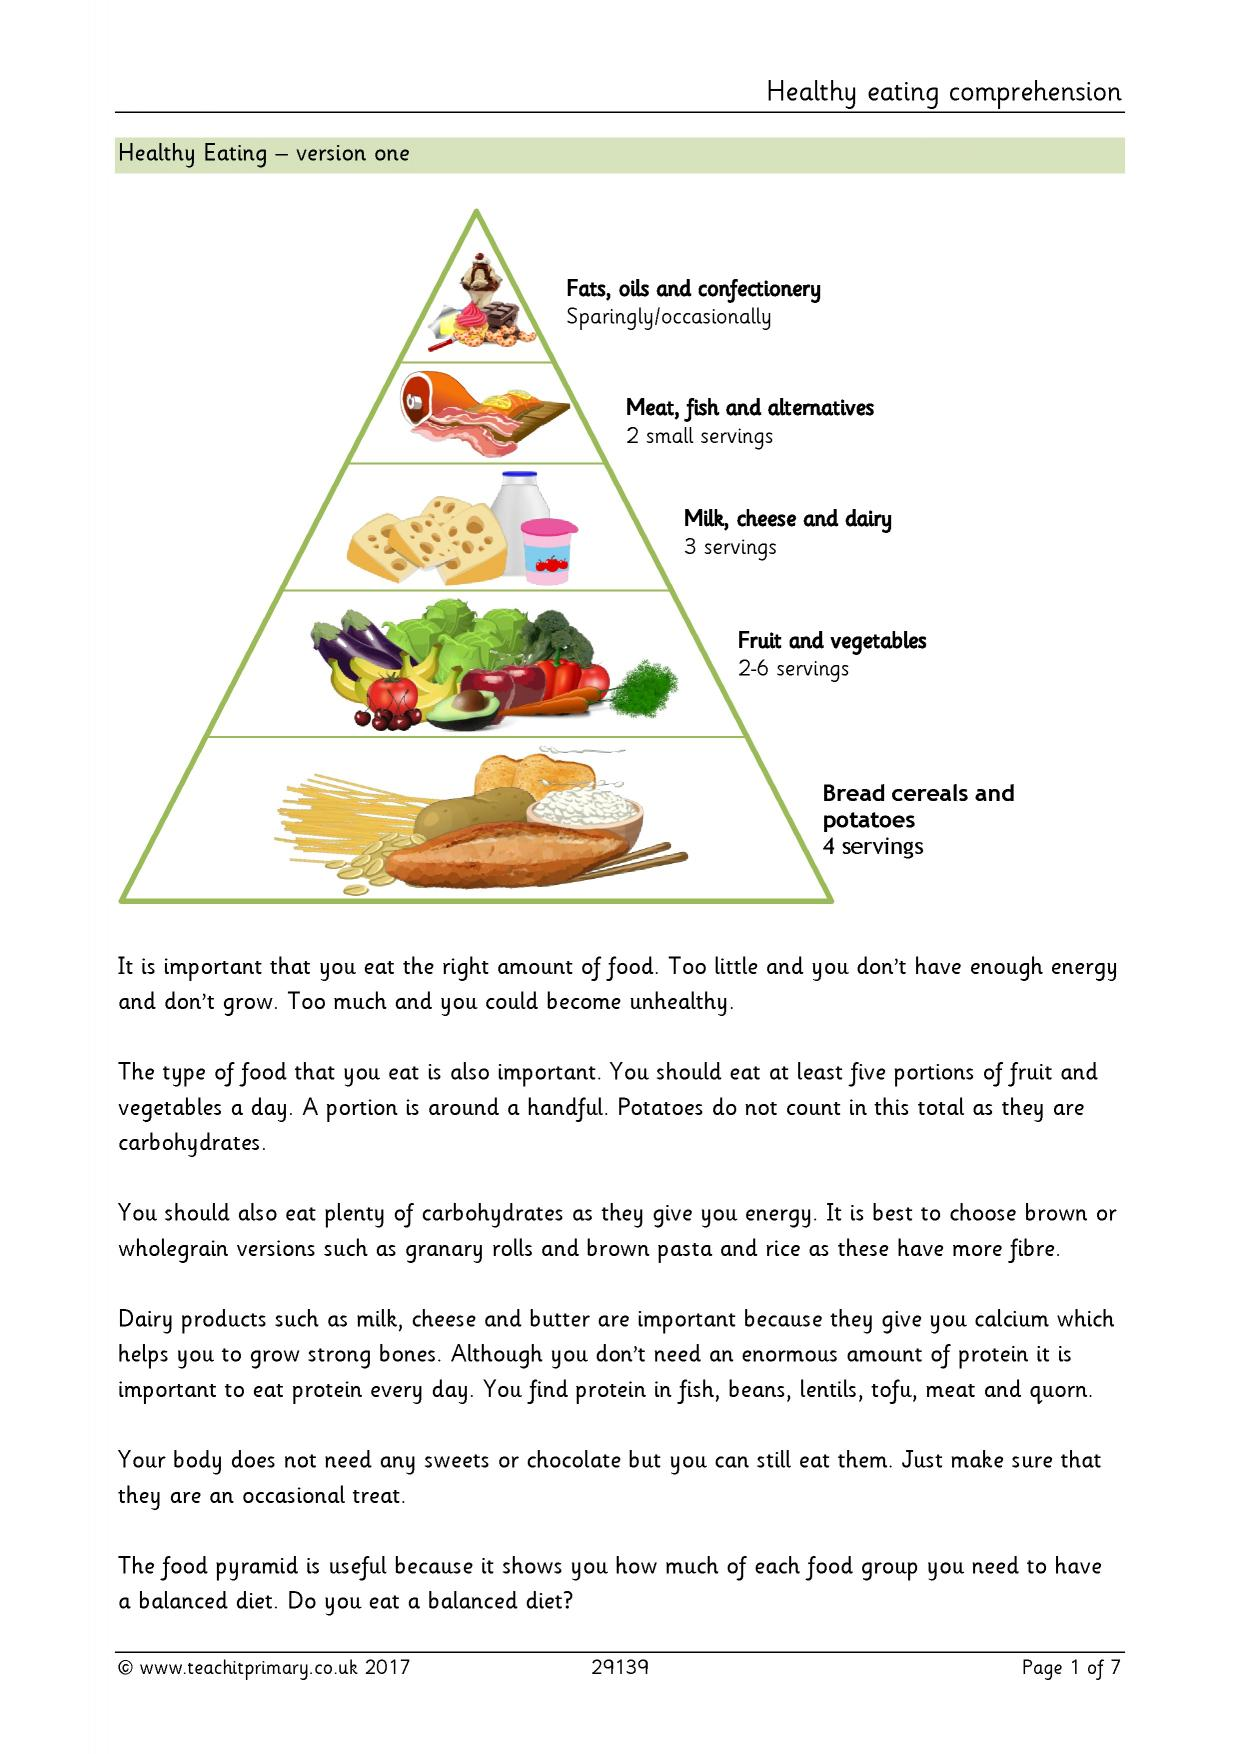 hight resolution of Healthy eating comprehension